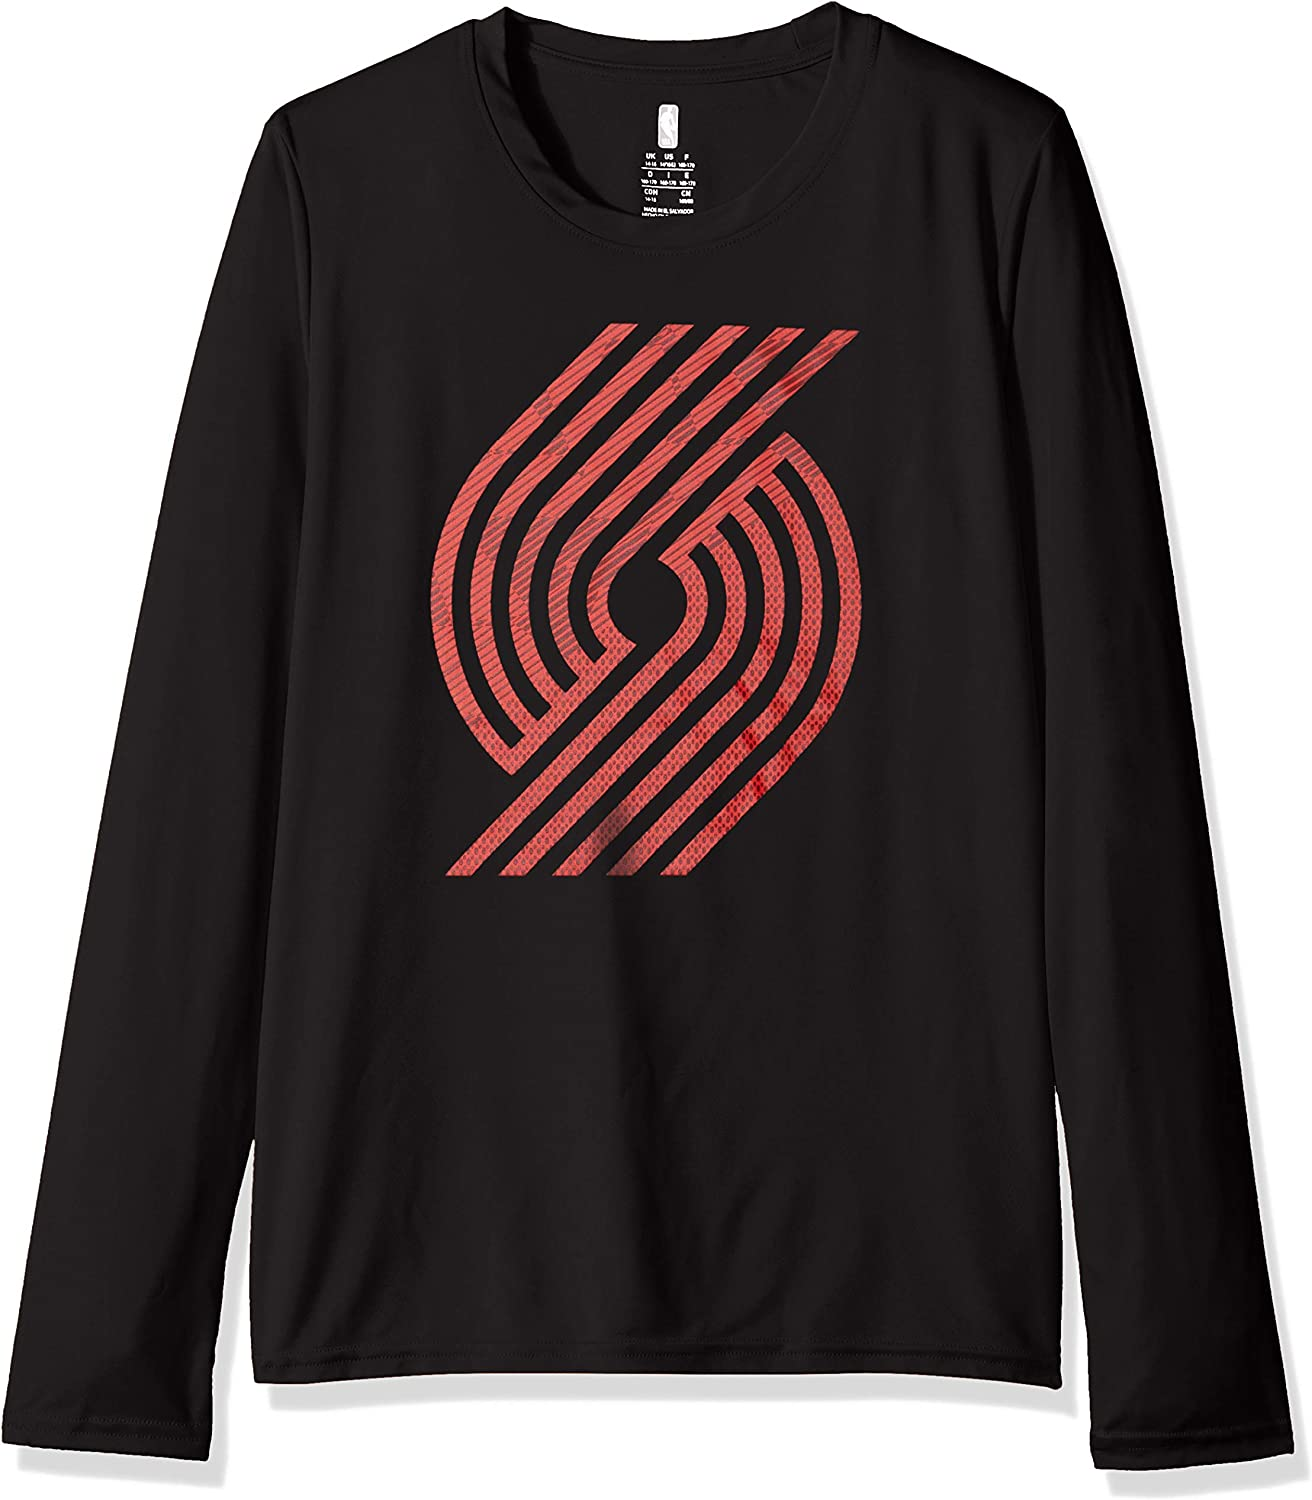 NBA by Outerstuff NBA Kids /& Youth Boys Defensive Long Sleeve Dri Tek Tee